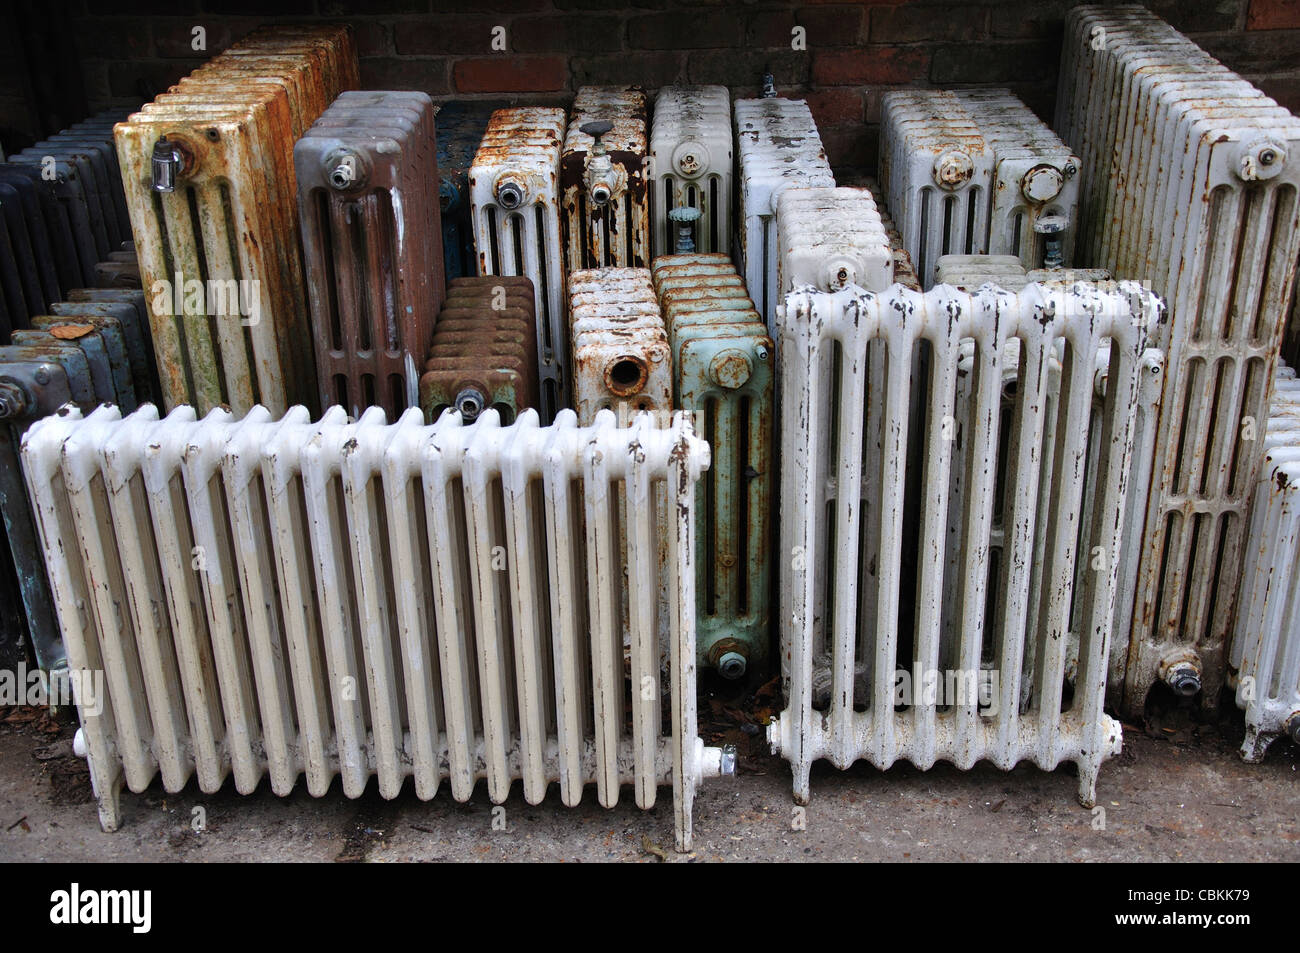 Antique Radiators Stock Photos Images Alamy Lincoln Sa 200 Radiator A Collection Of Old And Uk Image